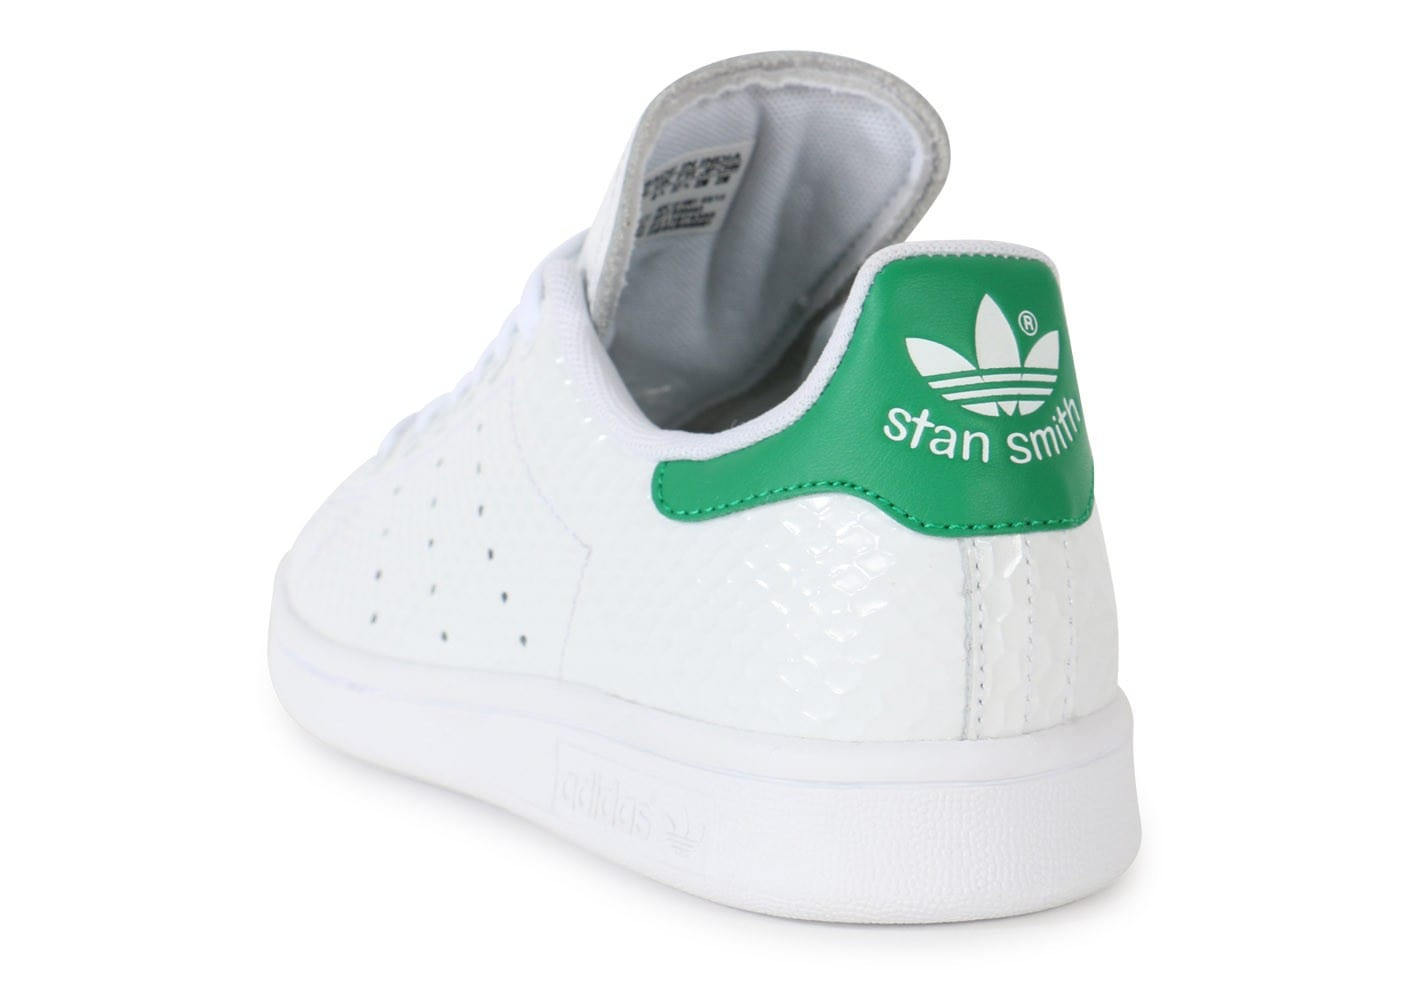 Nid Verte Et chaussures Smith D Adidas Blanche Chaussure Stan 7gb6fYy